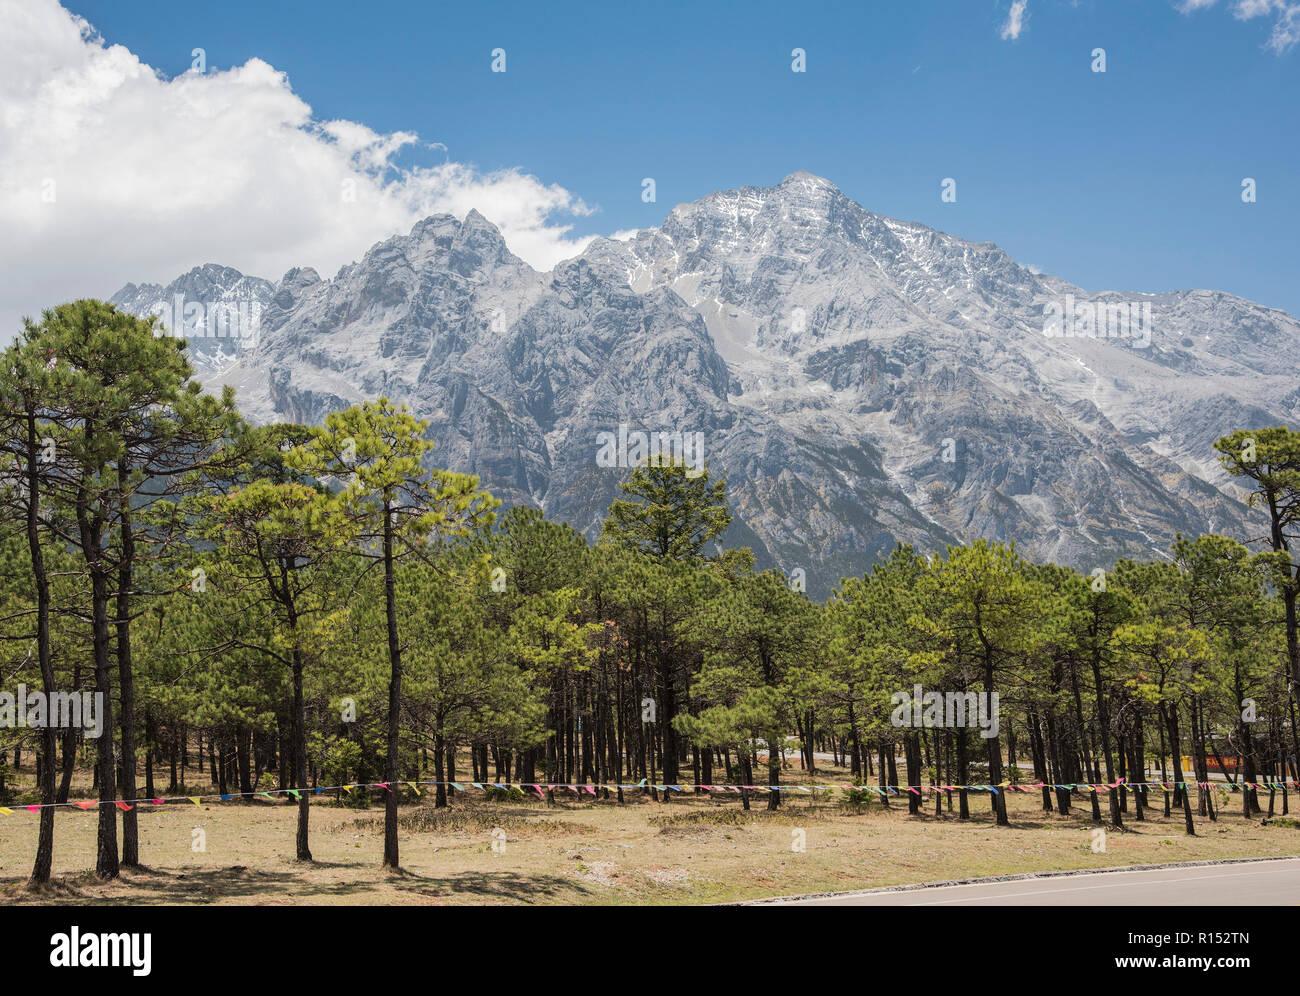 Snow covered Jade Dragon Mountains in the Yunnan province of China. - Stock Image